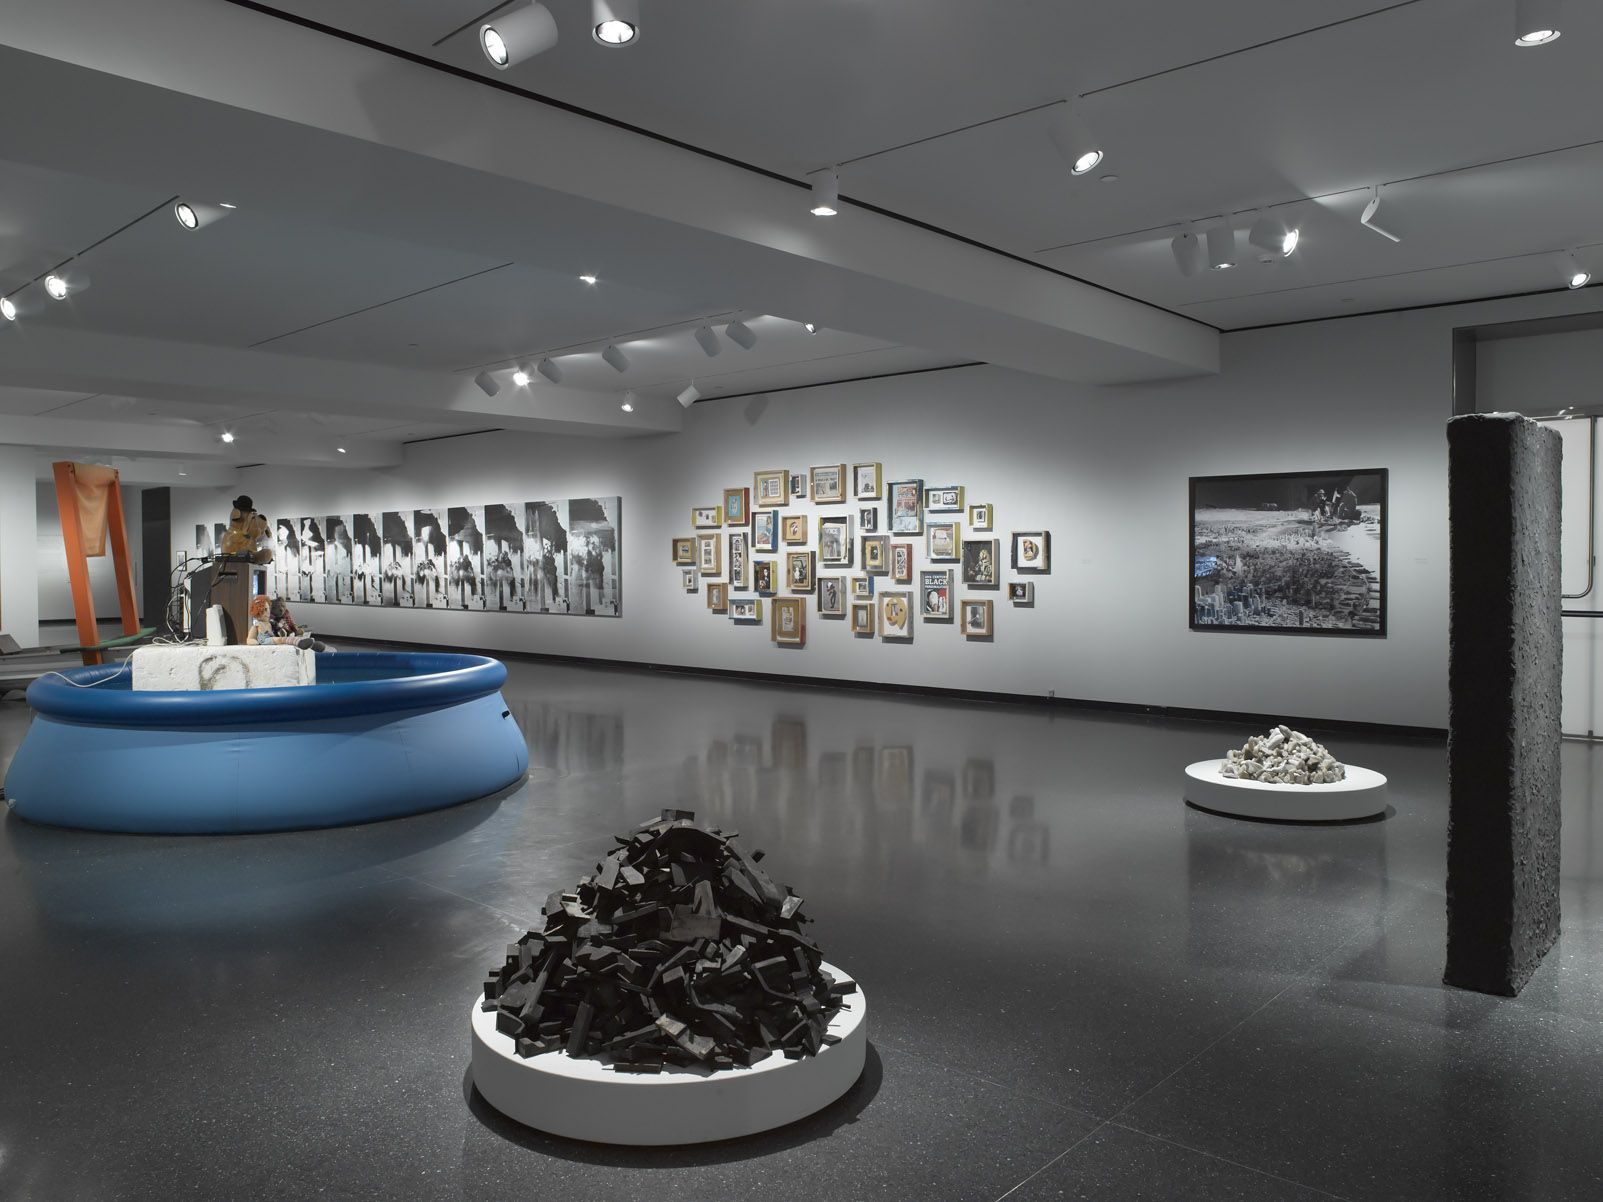 Installation view, The Bruce High Quality Foundation, Ode to Joy: 2001-2013, Brooklyn Museum, Brooklyn, 2013